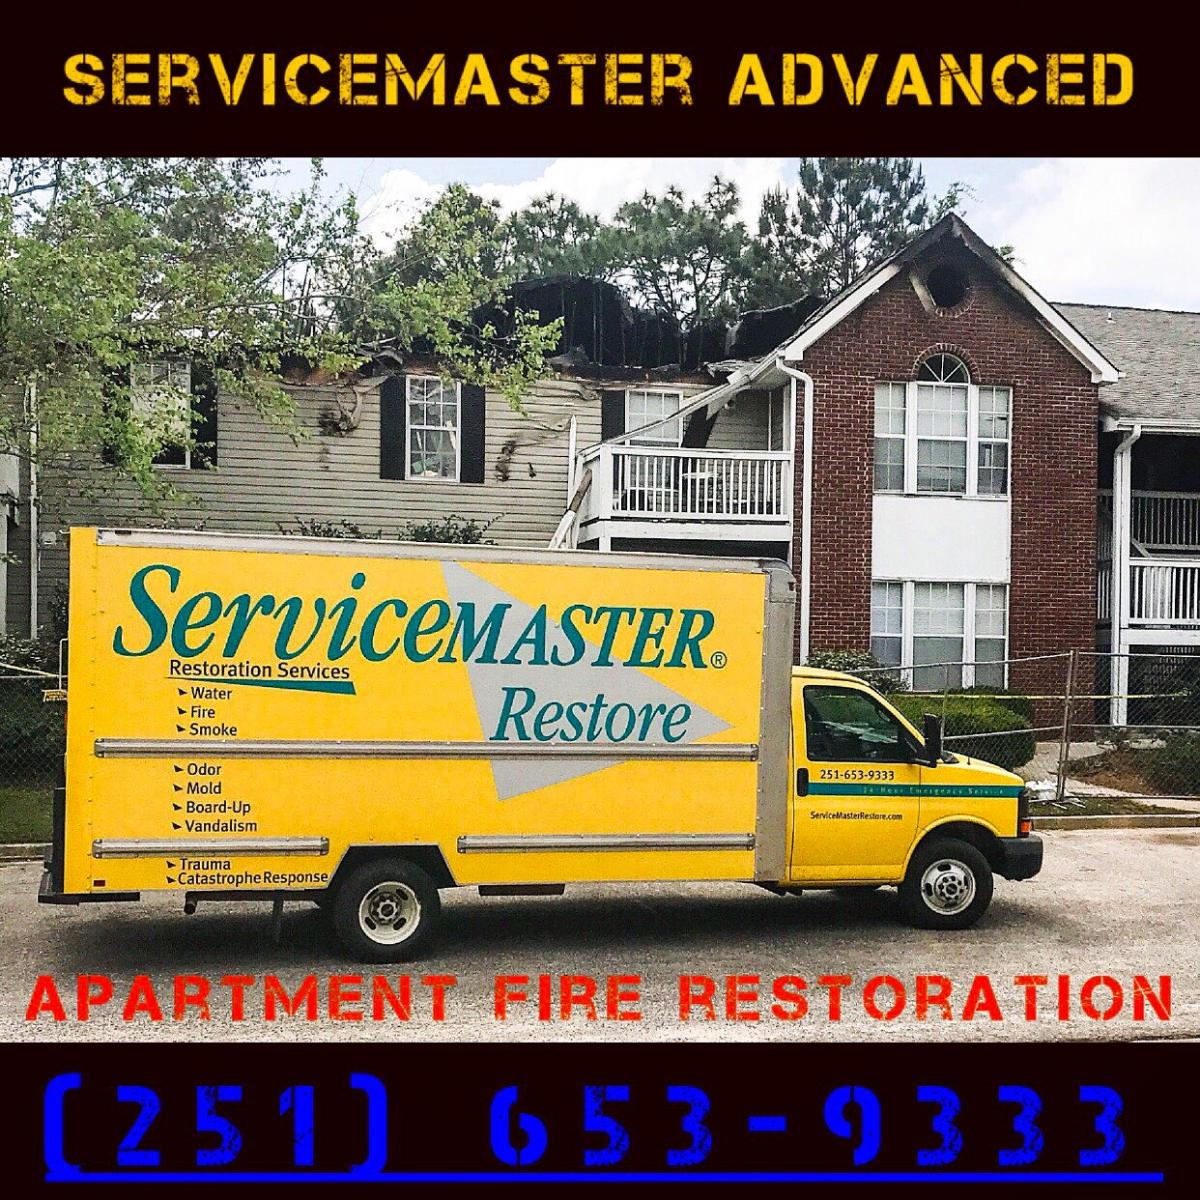 ac1fb86795 Don t let anyone tell you that your family heirlooms can t be saved until  you talk to us. ServiceMaster Advanced Cleaning   Restoration has been  saving the ...